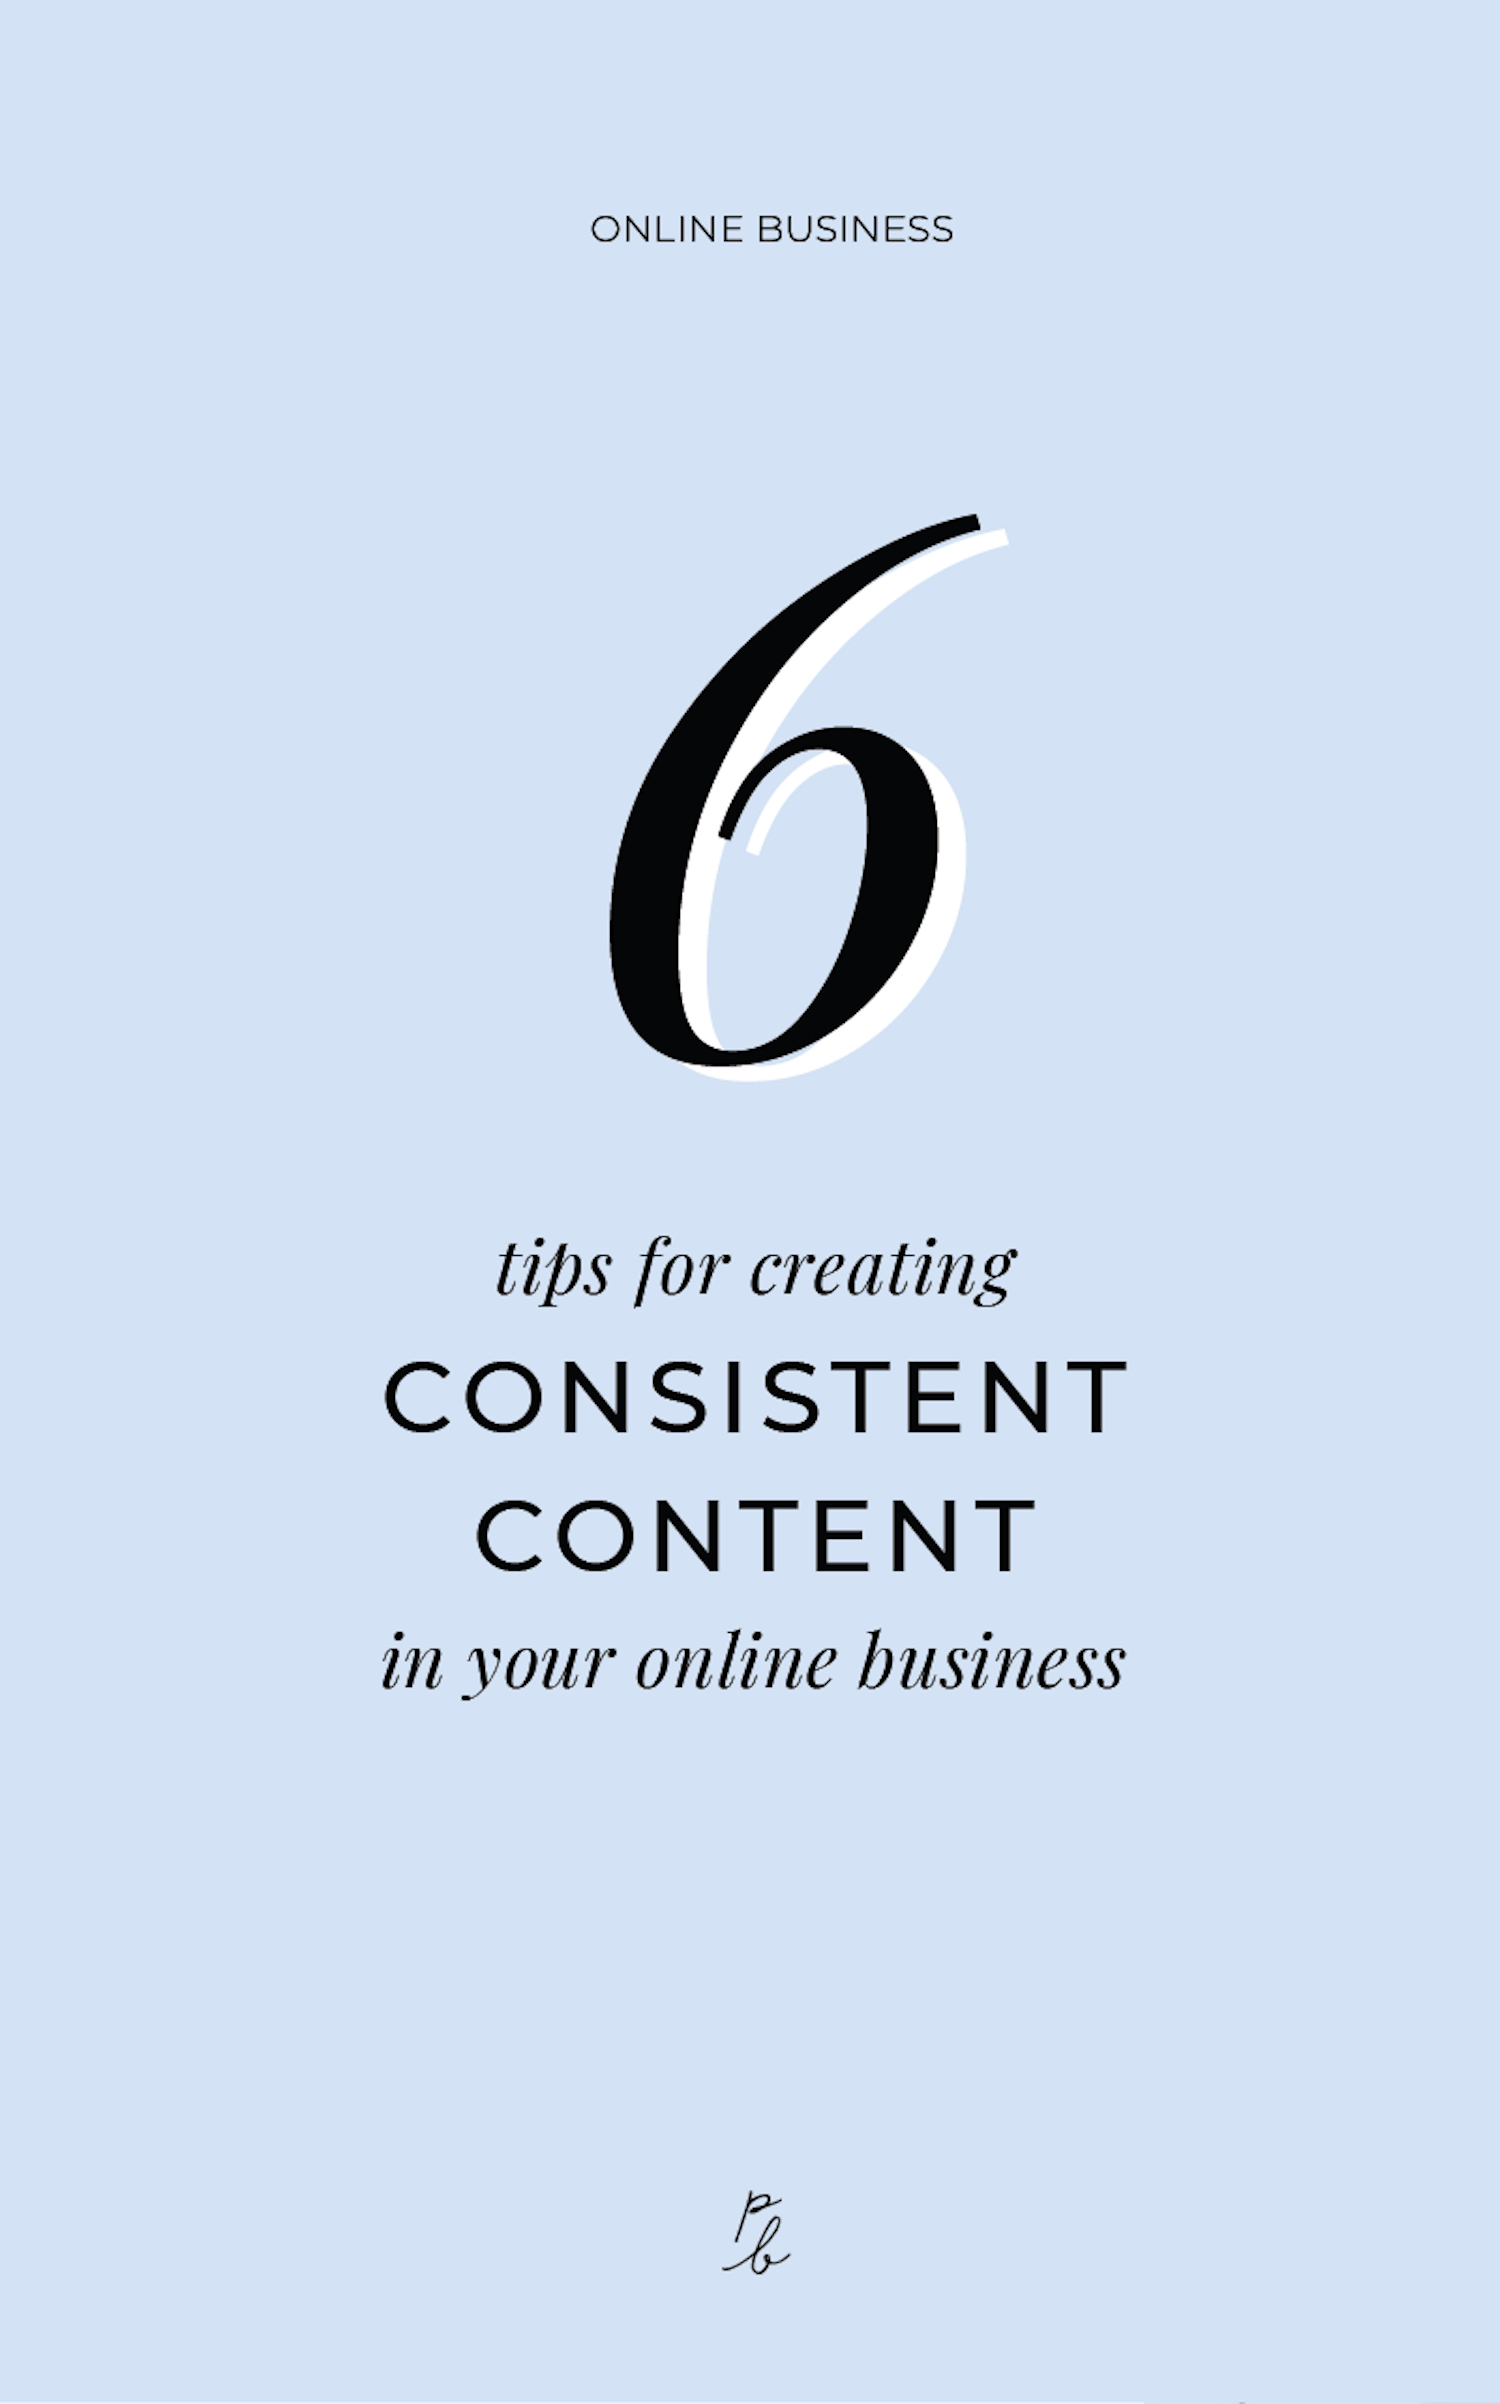 6 tips for creating consistent content in your online business .jpeg